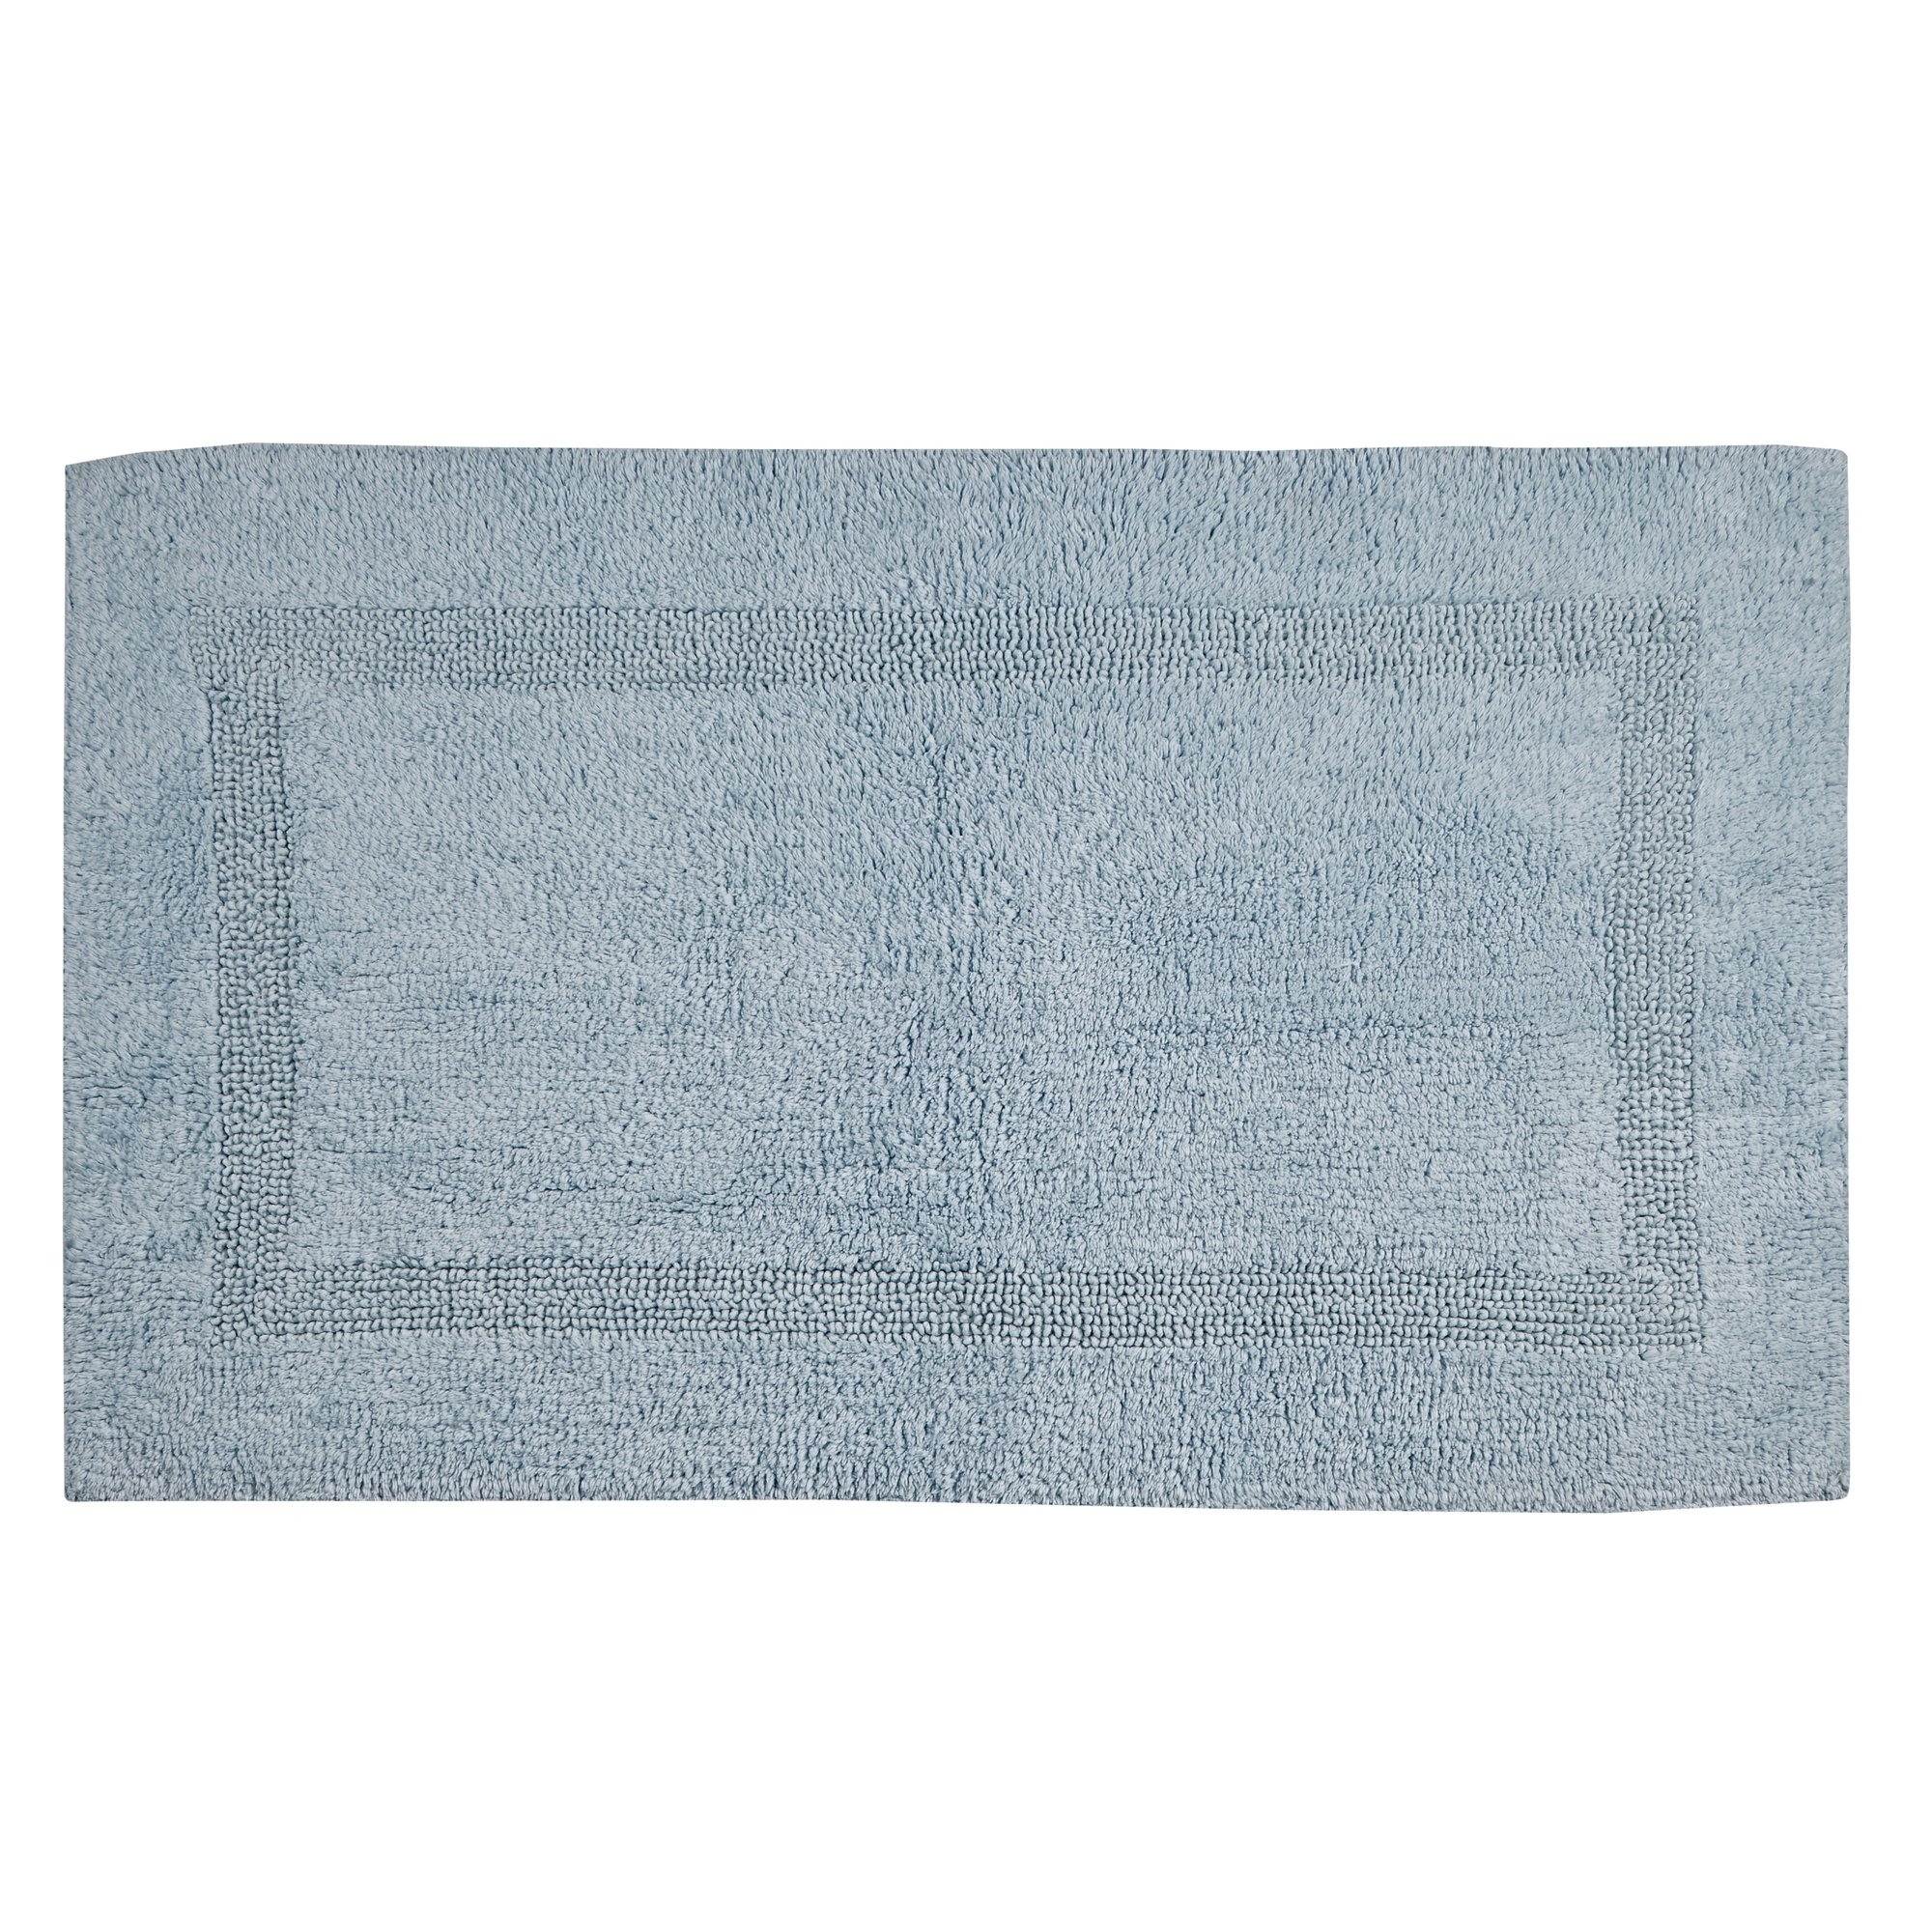 Permalink to Newhaven Bath Mats